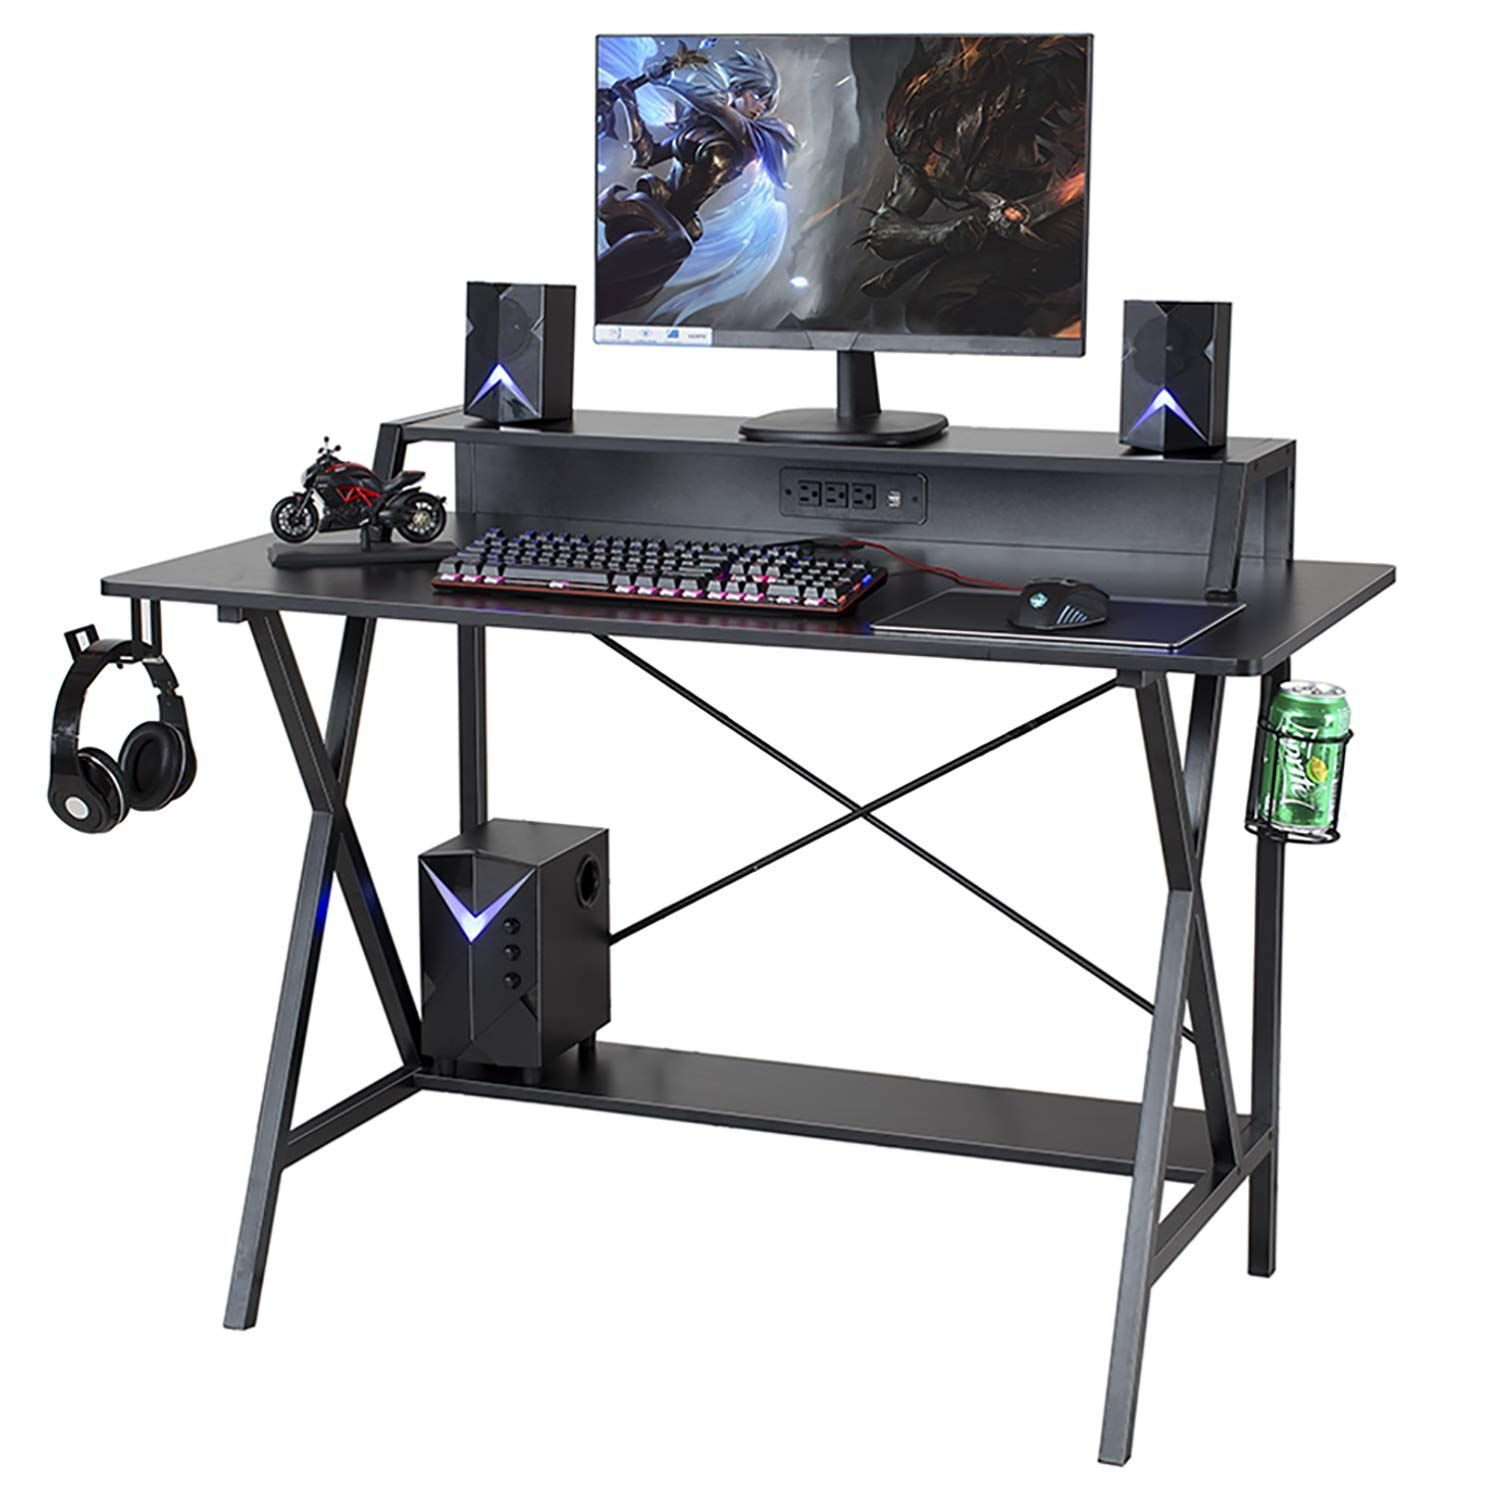 Sedeta Gaming Desk, 47 Gaming Table, E-Sports Computer Desk, Gaming Workstation Desk, PC Stand Shelf Power Strip with USB Cup Holder & Headphone Hook Home Office Desk Gamer Desk Writing Table, Black #gamingdesk